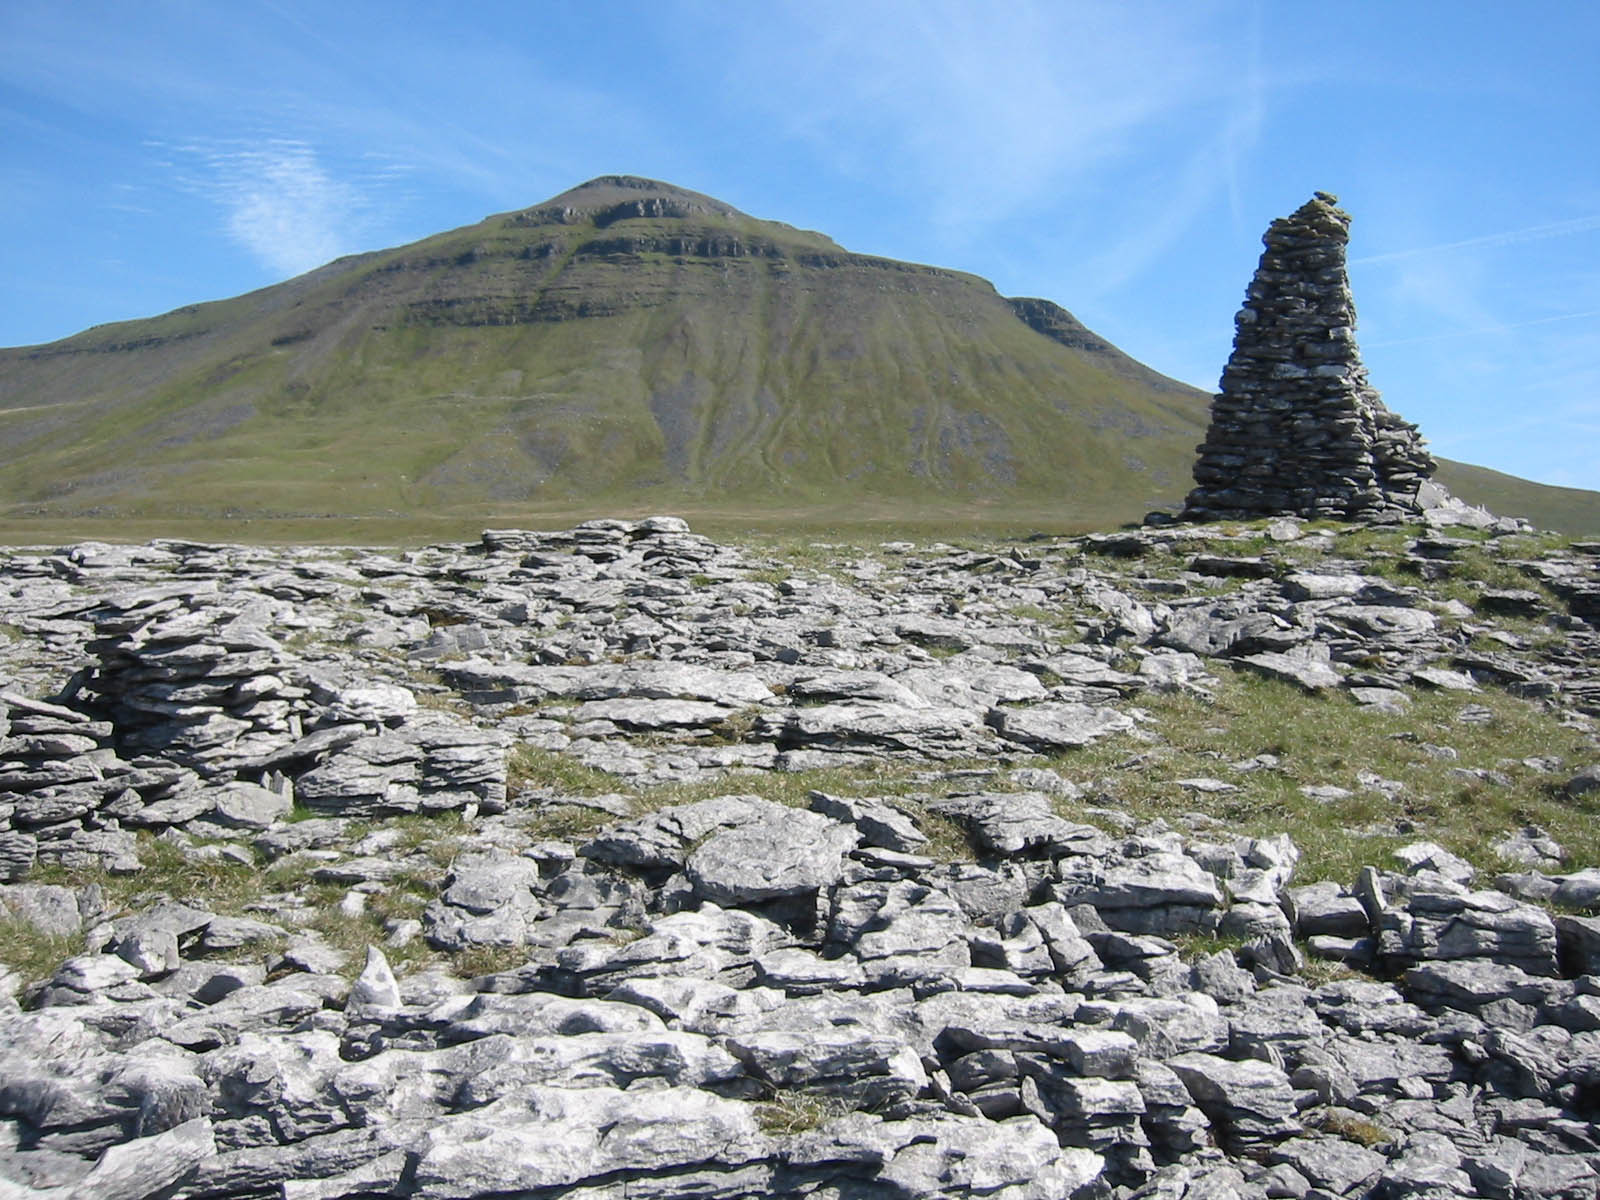 Cairn, Harry Hallam's Moss